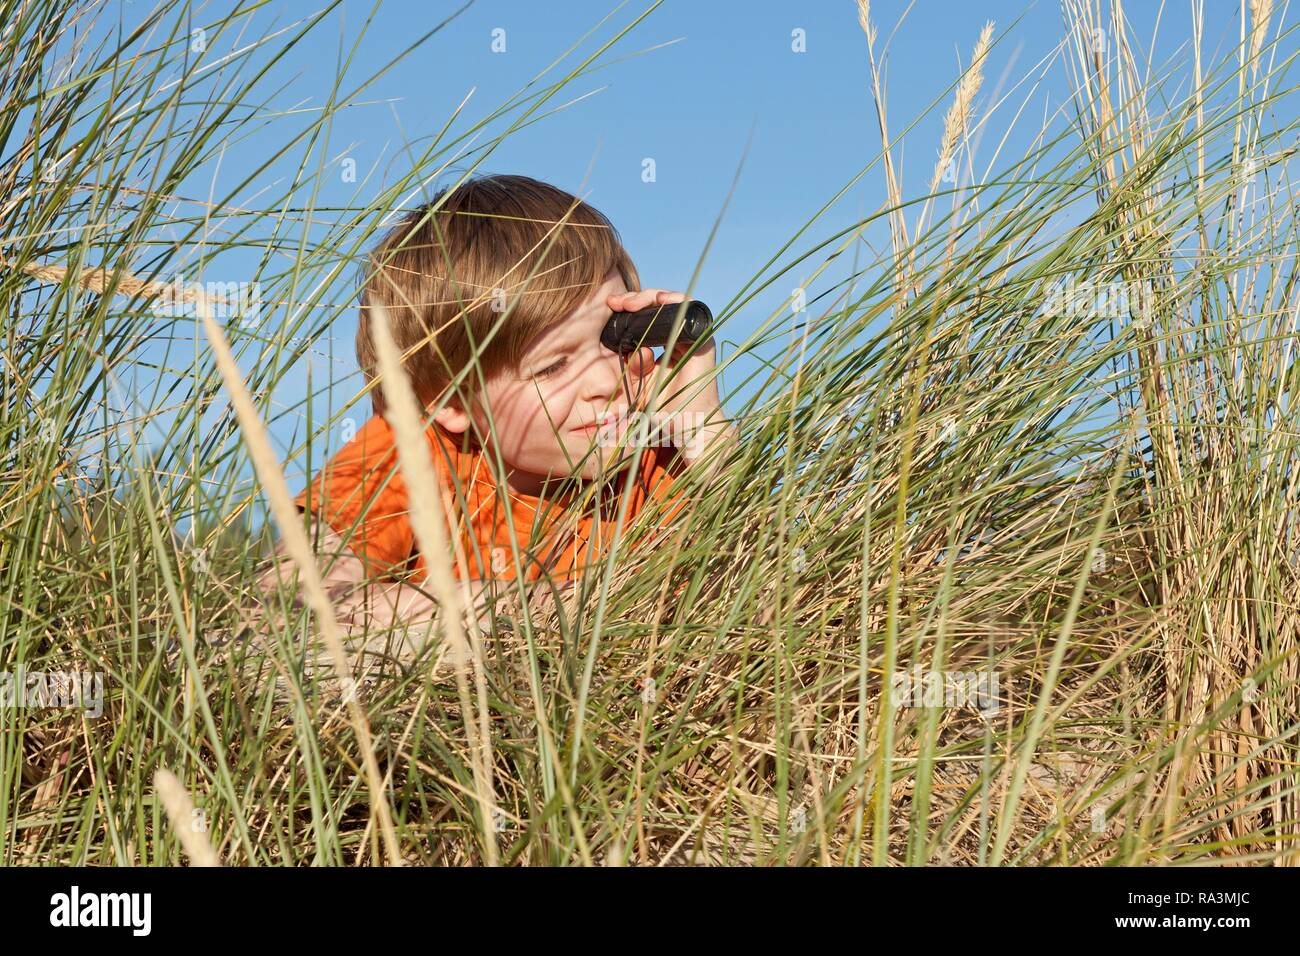 Boy in the dune grasses, looking through a telescope, Warnemunde, Mecklenburg-Western Pomerania, Germany - Stock Image